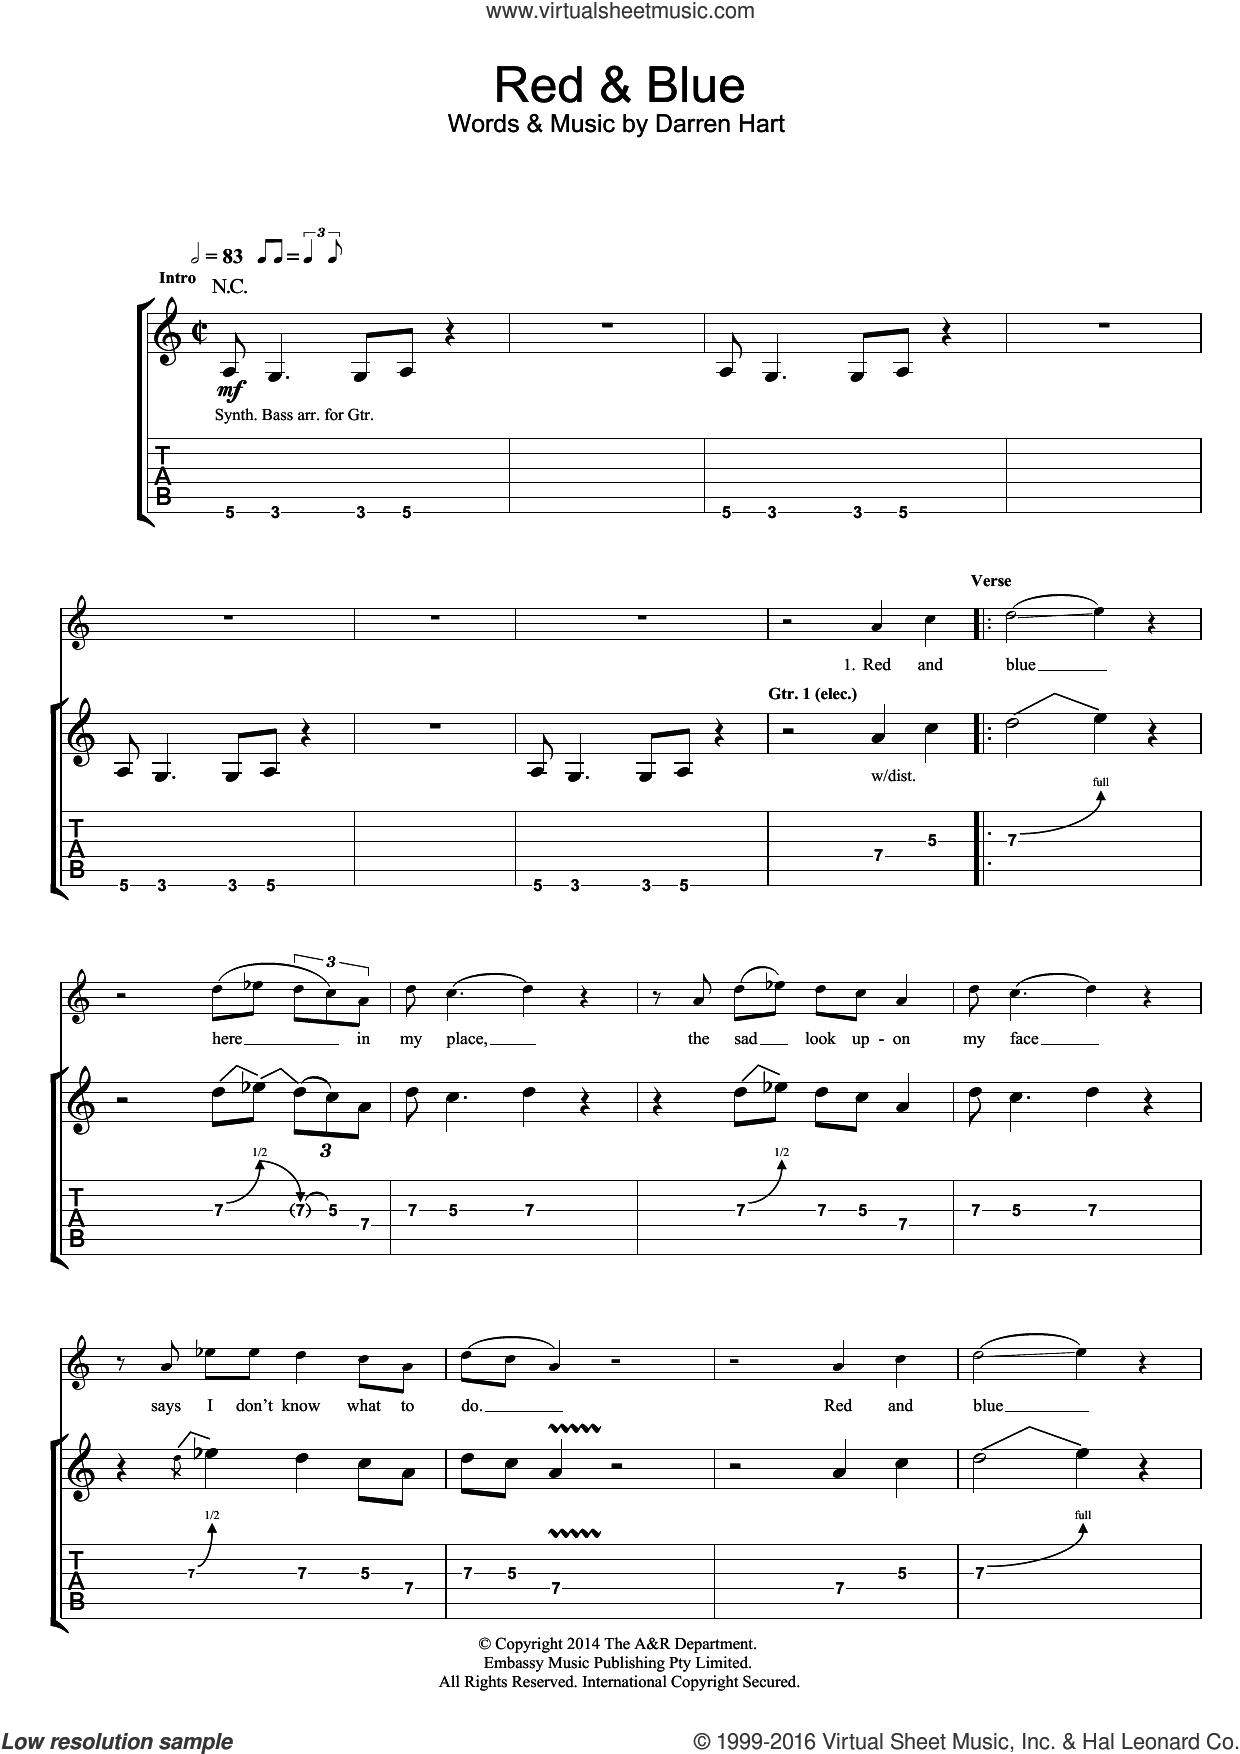 Red And Blue sheet music for guitar (tablature) by Darren Hart